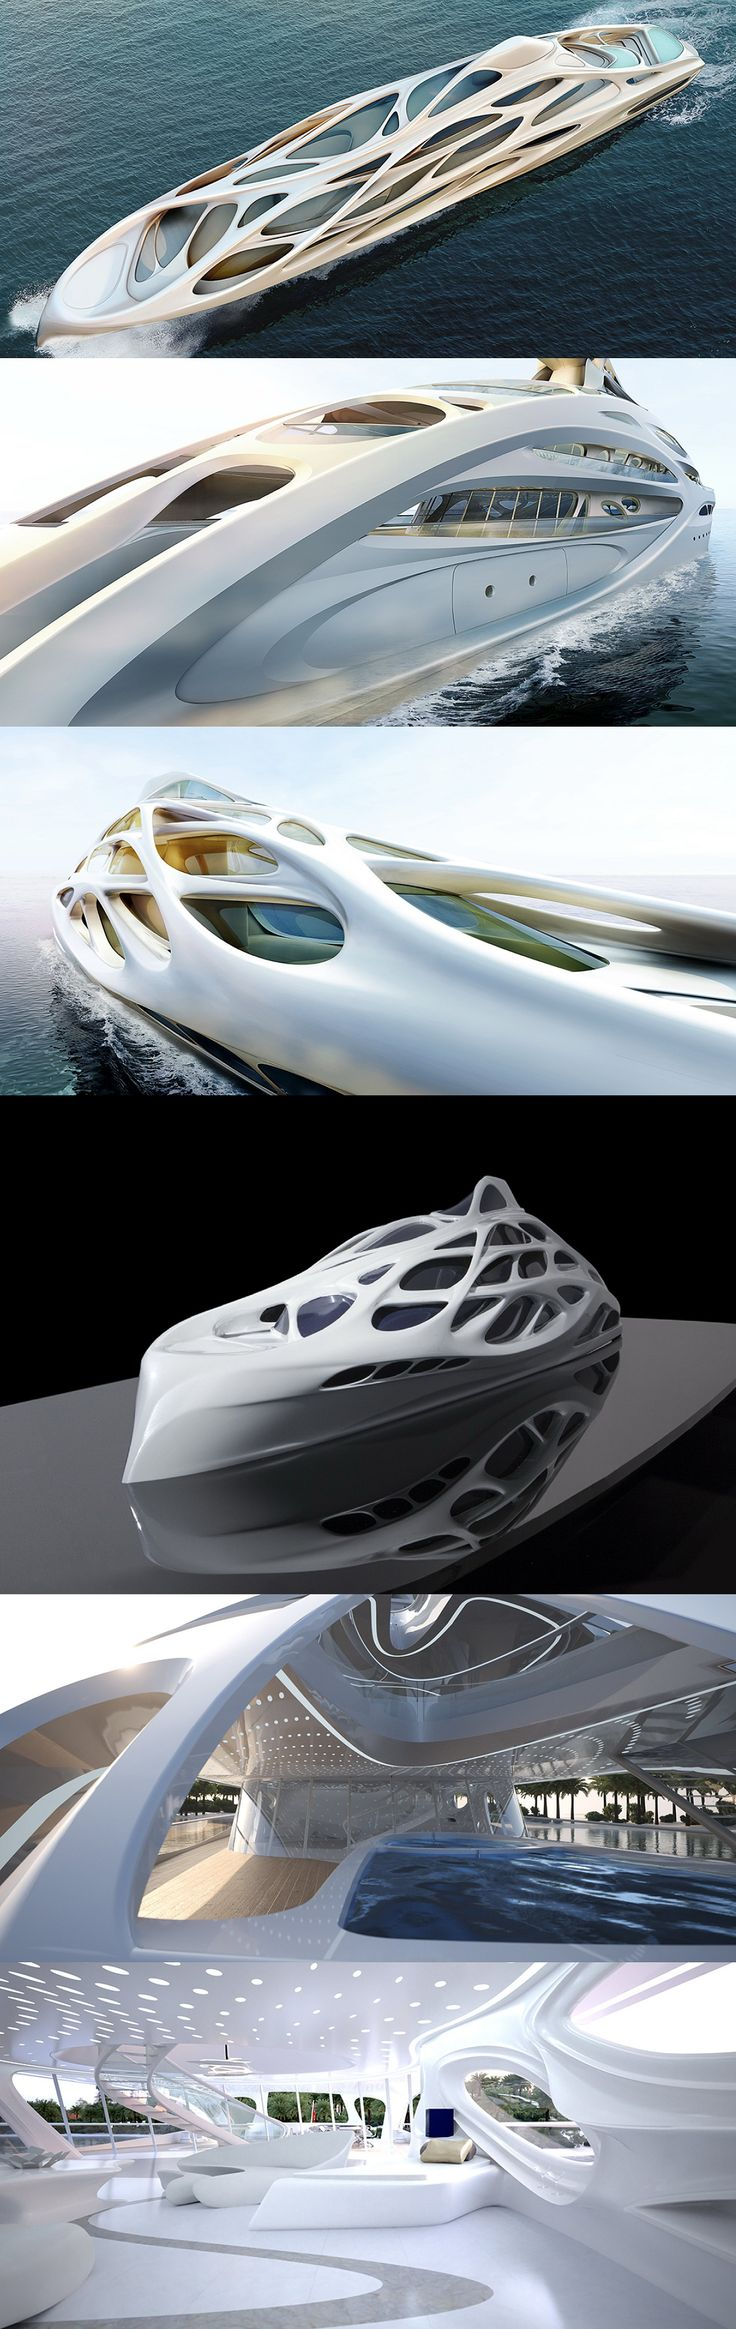 """Unique Design Circle Yachts    Zaha Hadid Collaborates With Blohm + Voss on Designing 5 Superyachts    Zaha Hadid is designing five individual superyachts for German shipbuilders Blohm + Voss called Unique Circle Yachts. They are based off of the concept of a 128 meter master prototype. """"The overall design is informed by fluid dynamics and underwater ecosystems, with hydrodynamic research shaping the design of the hull."""""""